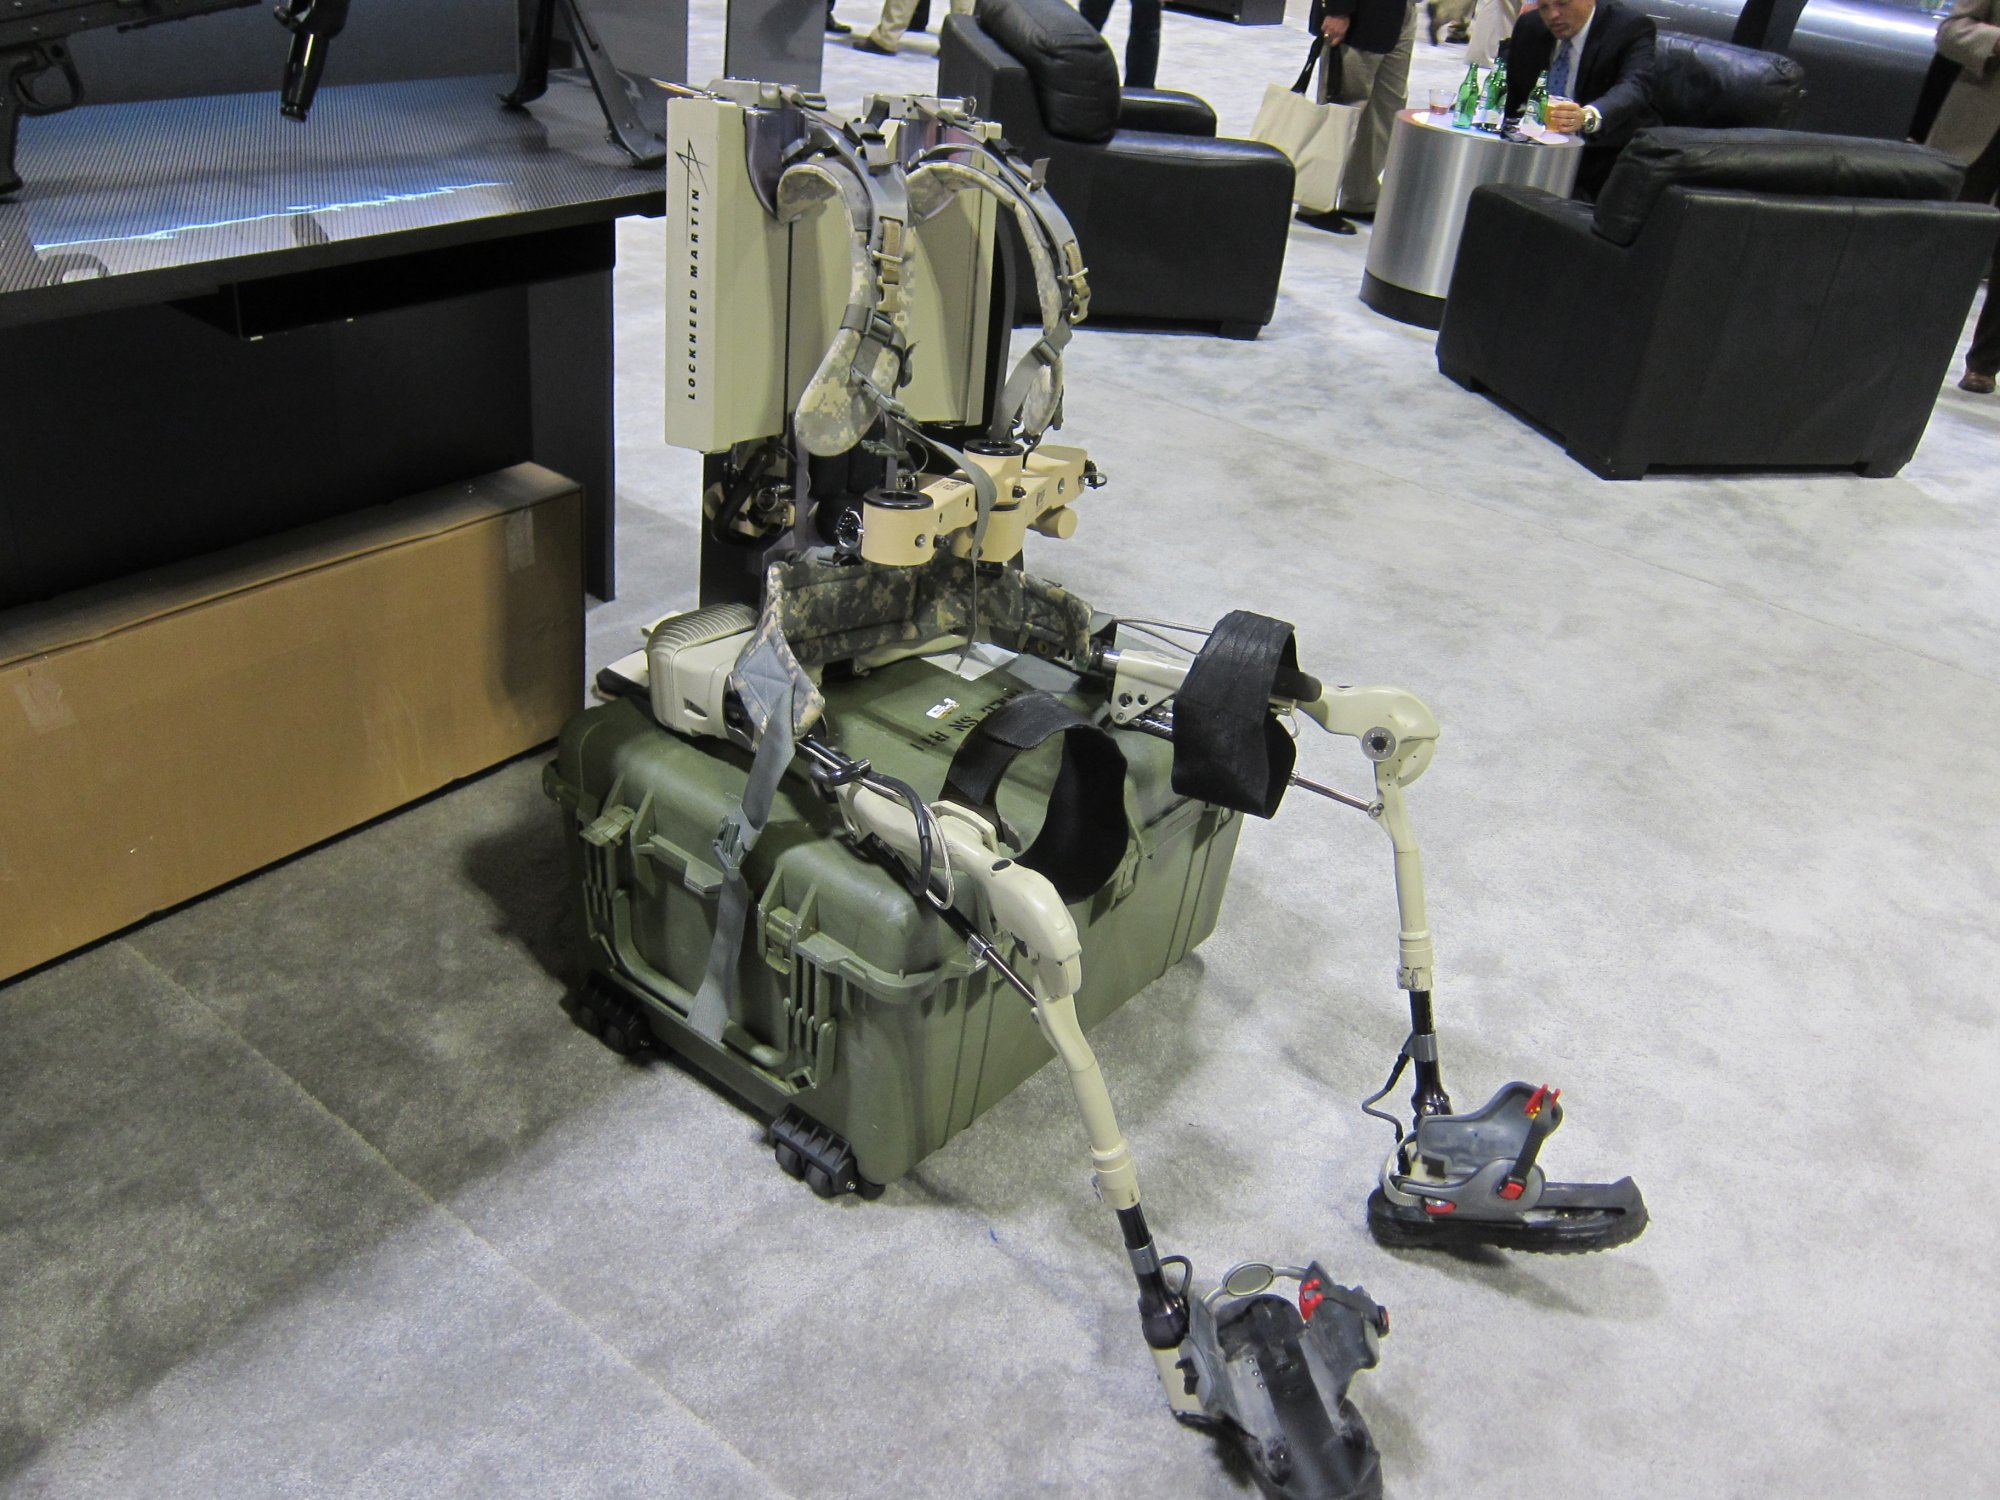 Berkeley Bionics Lockheed Martin HULC Human Universal Load Carrier Anthropomorphic Exoskeleton for Military Combat SOFIC 2012 DefenseReview.com DR 3 Lockheed Martin HULC (Human Universal Load Carrier) Anthropomorphic Robotic Exoskeleton for Future Military Special Operations Forces (SOF) Warfare at SOFIC 2012 (Video!)